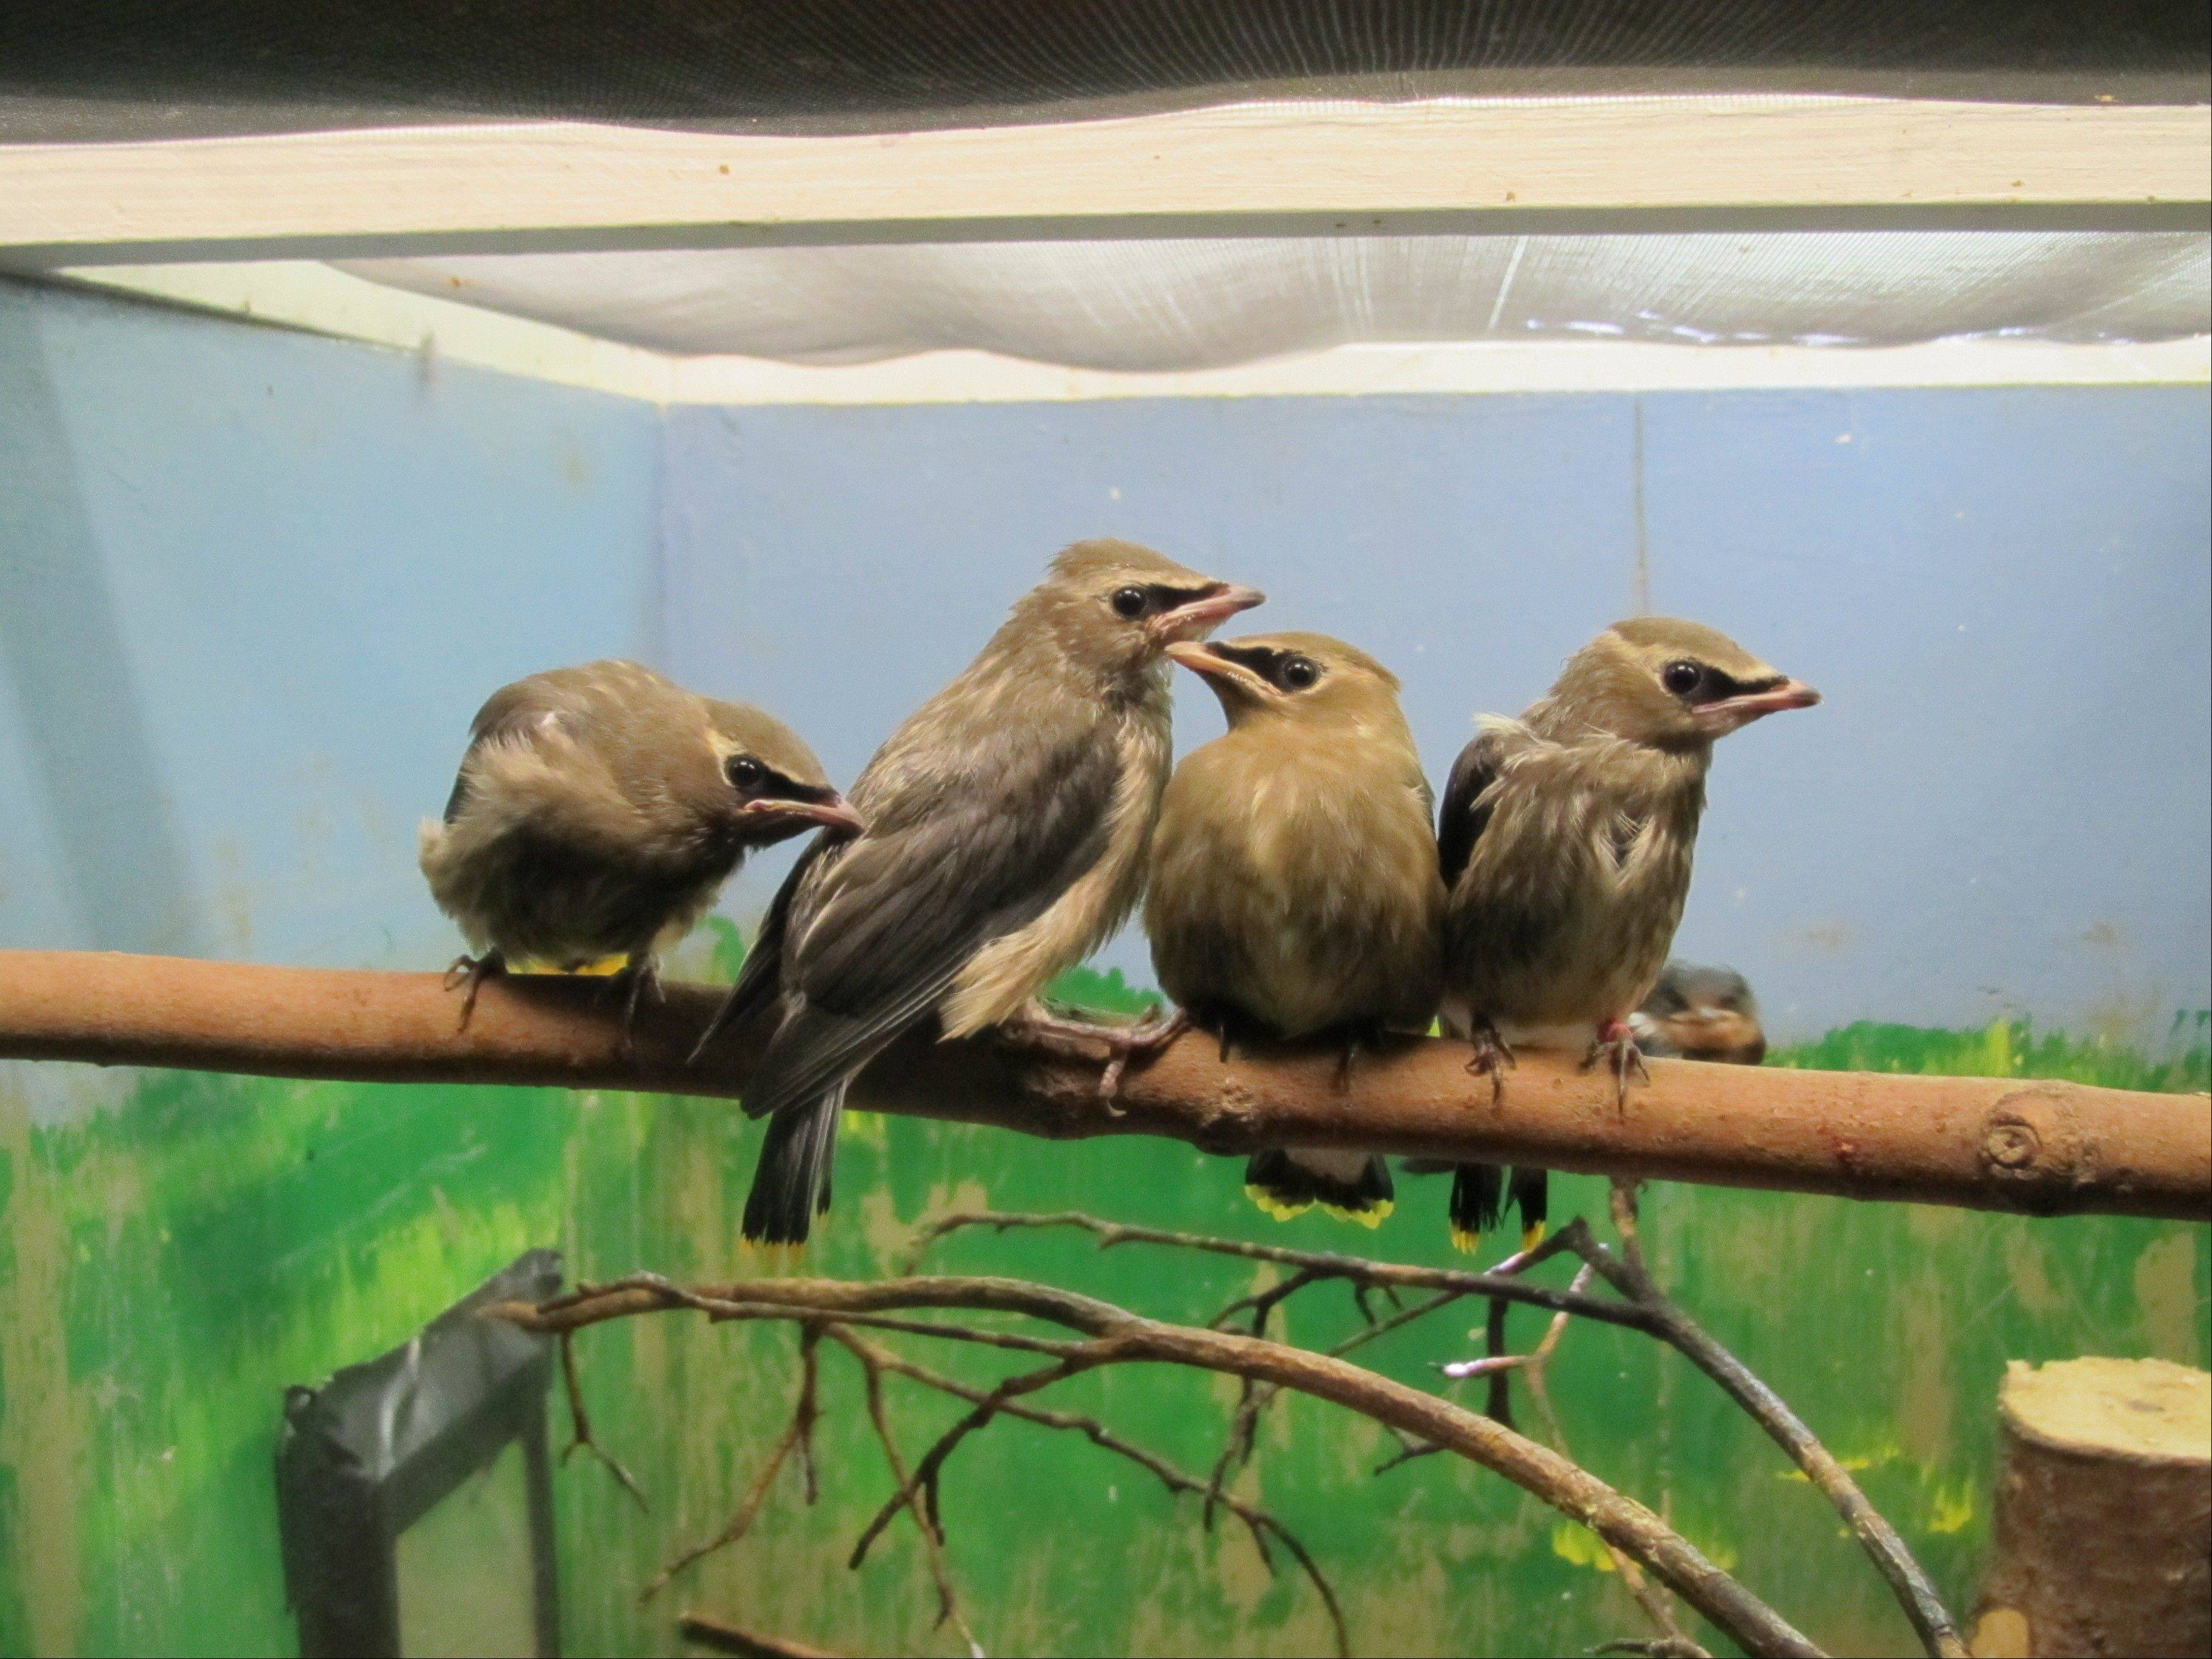 The fledgling cedar waxwings are among 160 animals, mostly birds, brought to Willowbrook Wildlife Center in Glen Ellyn after a July 1 storm left them injured or orphaned.